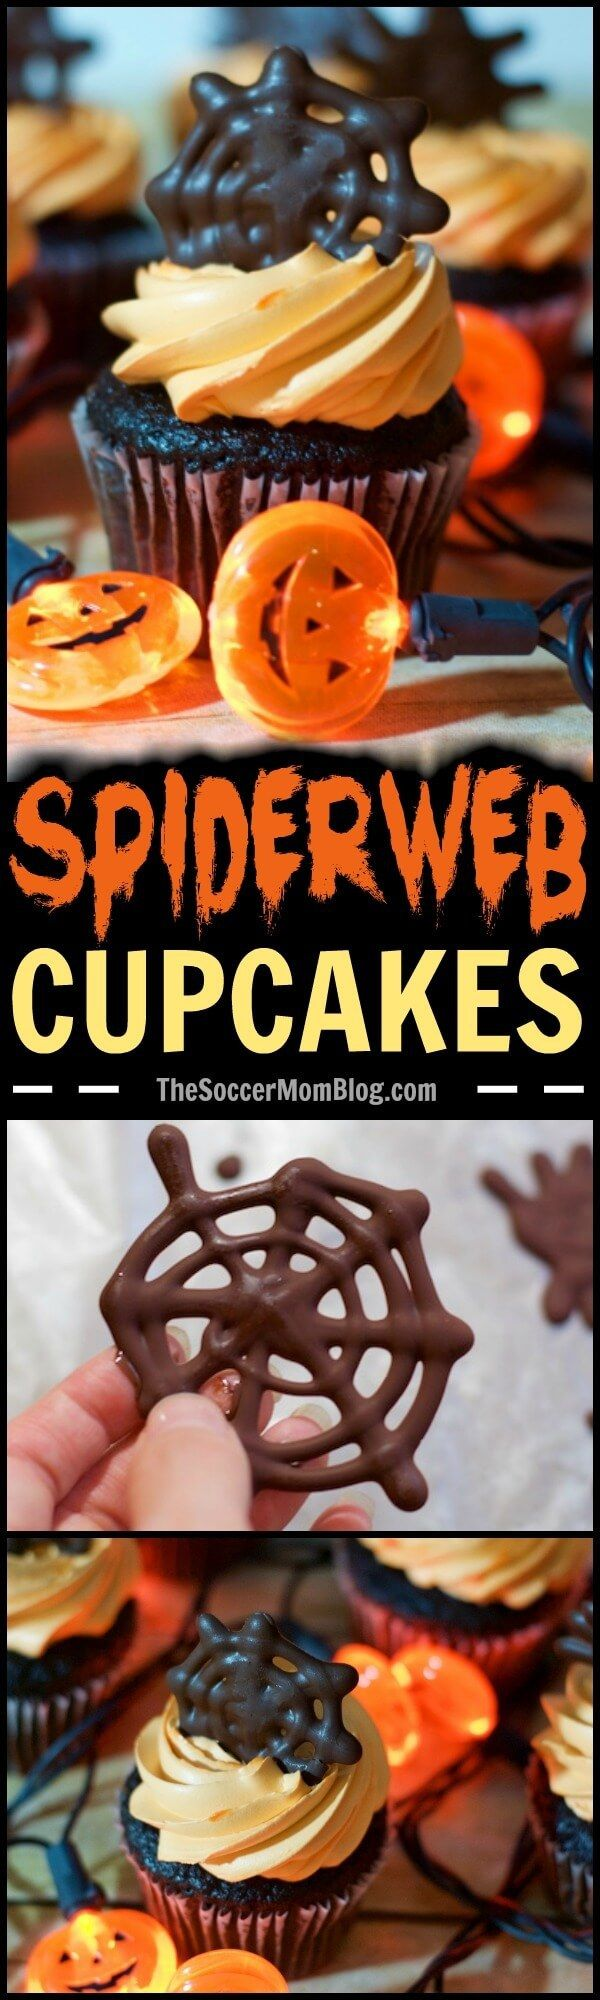 These easy chocolate spiderweb Halloween cupcake toppers will help you create a wow-worthy (and spooky) holiday dessert in record time! #ad #WhippedIcing